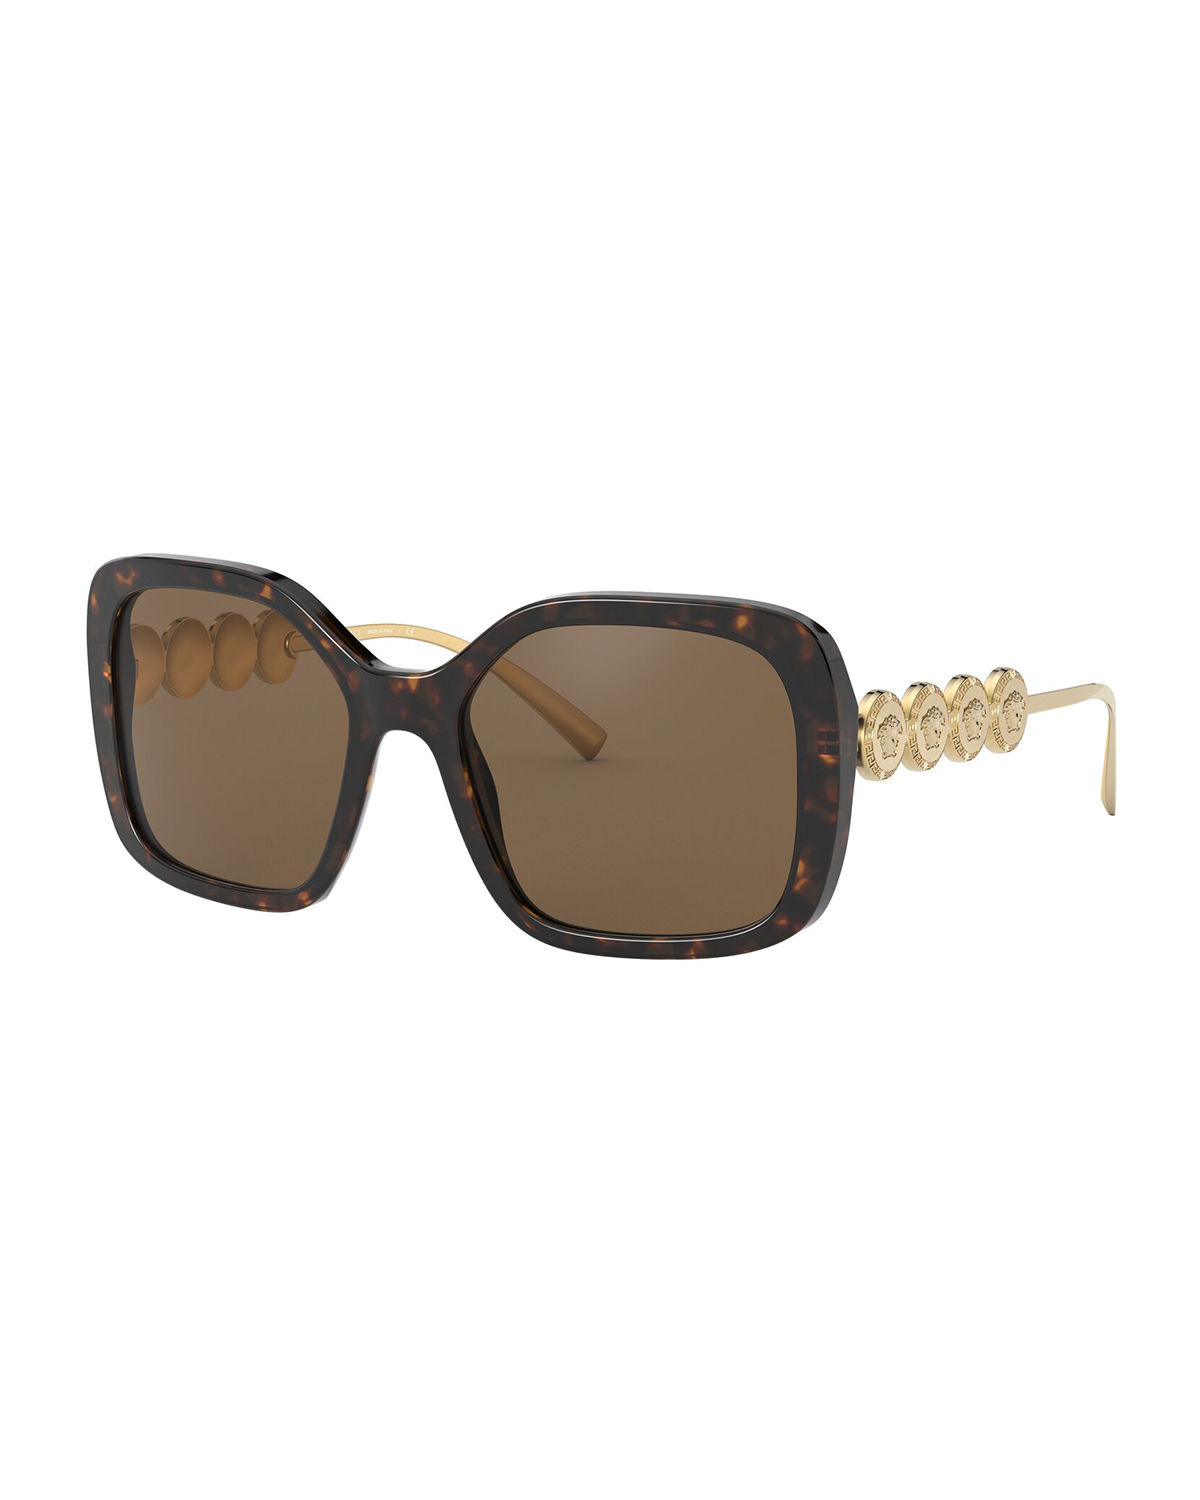 Versace Sunglasses SQUARE ACETATE SUNGLASSES W/ MEDUSA ARMS